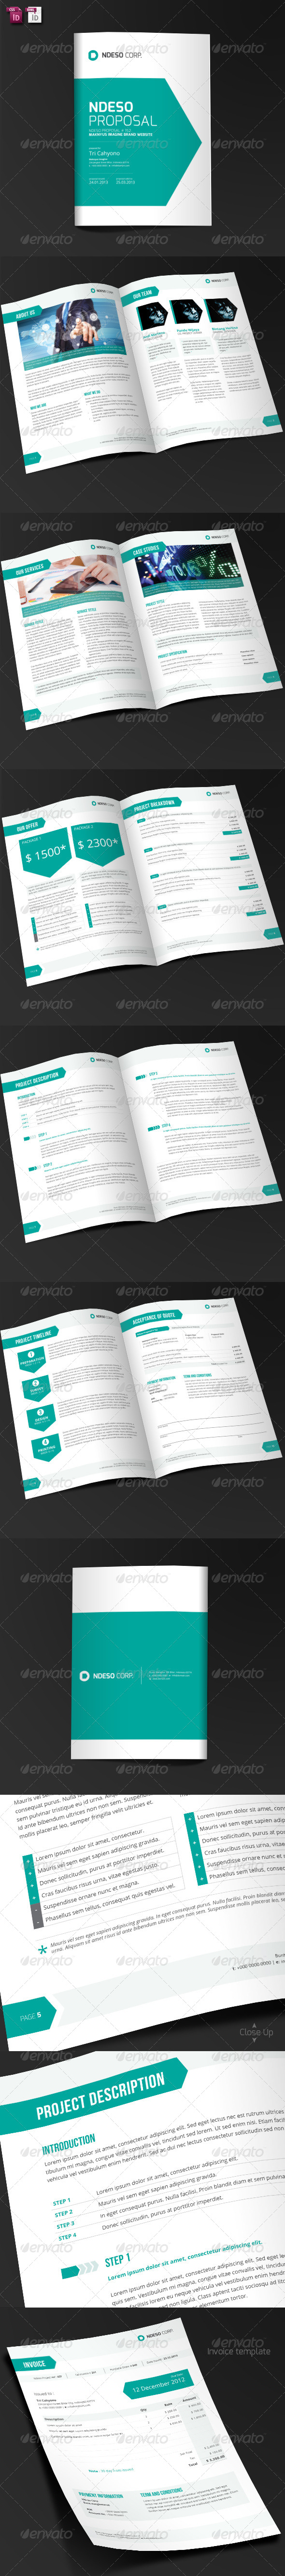 Ndeso Proposal and Invoice Template - Proposals & Invoices Stationery